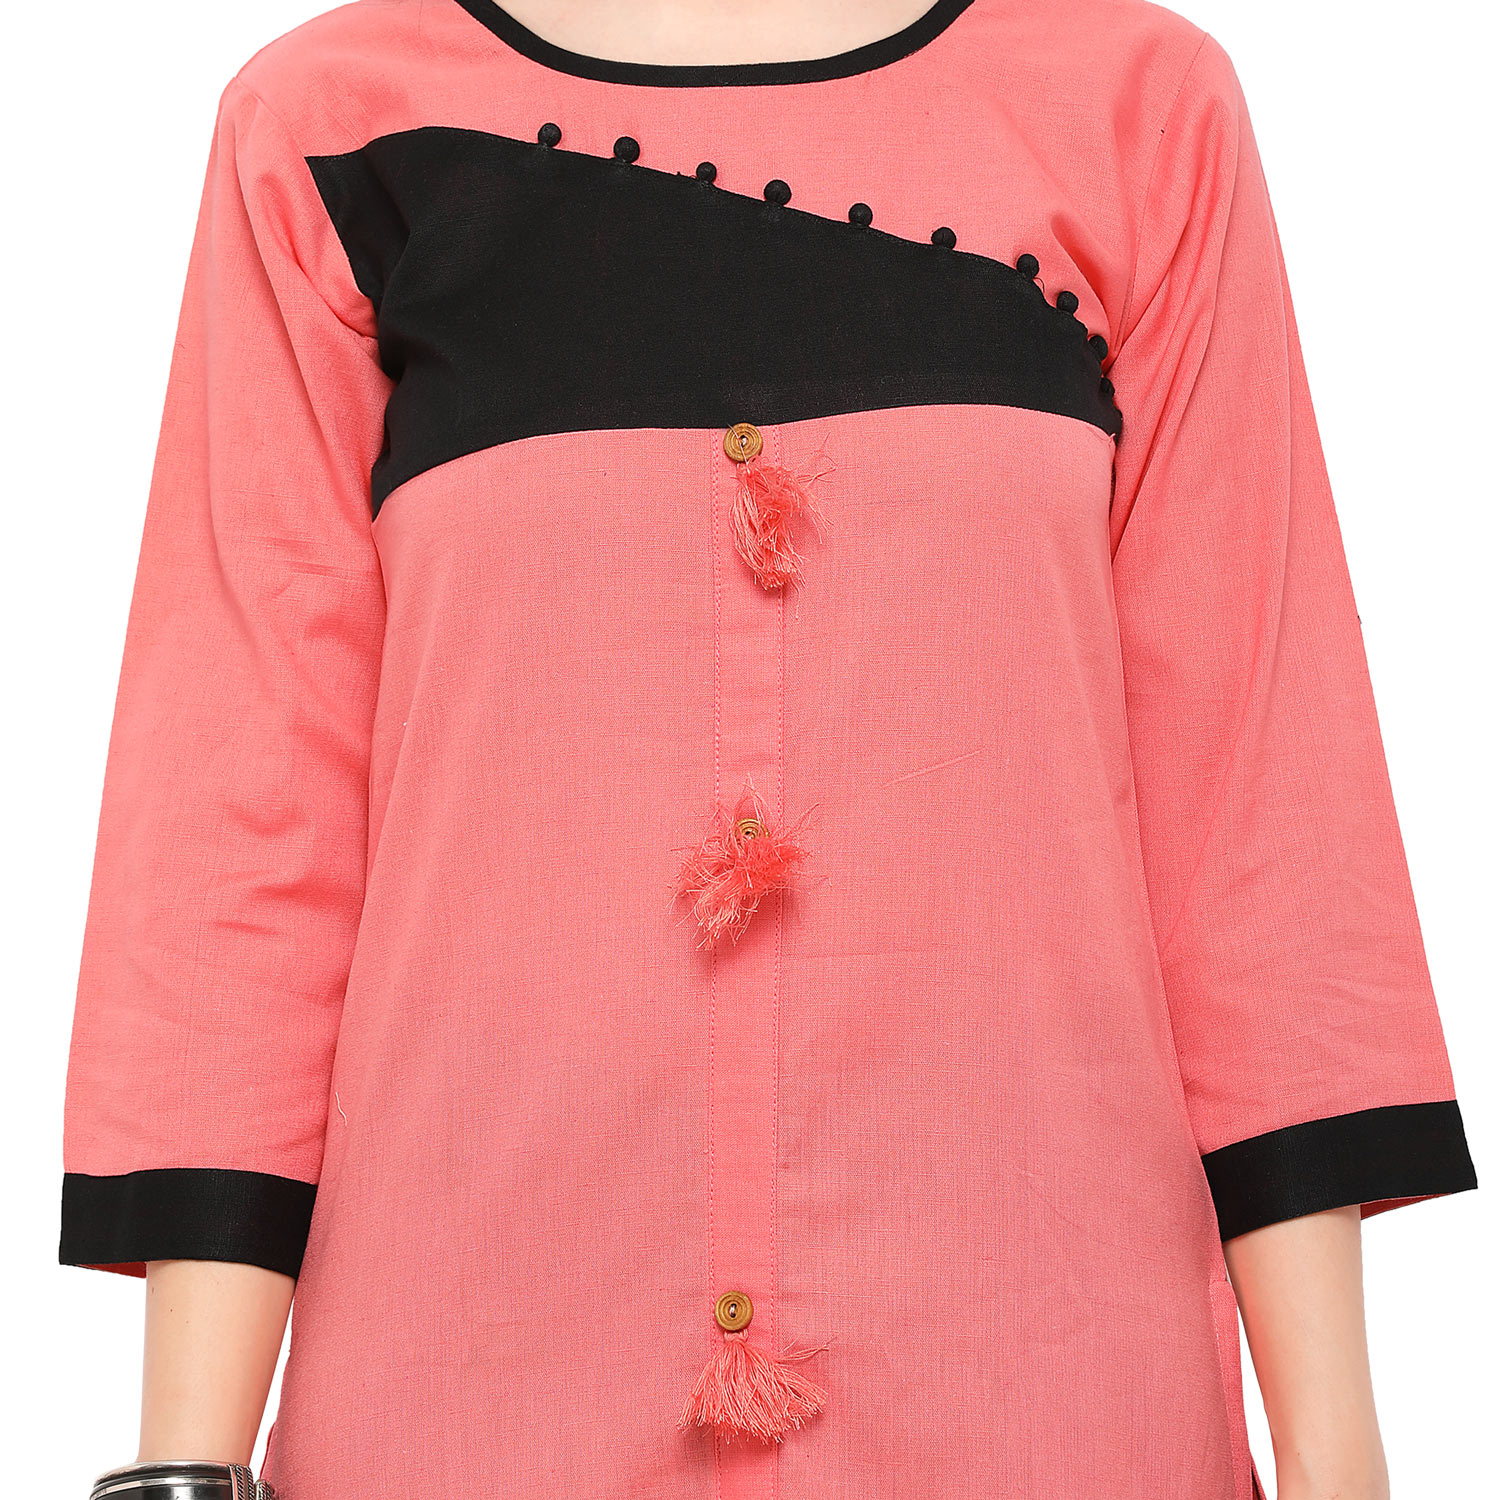 buy peach colored casual cotton kurti online india best prices